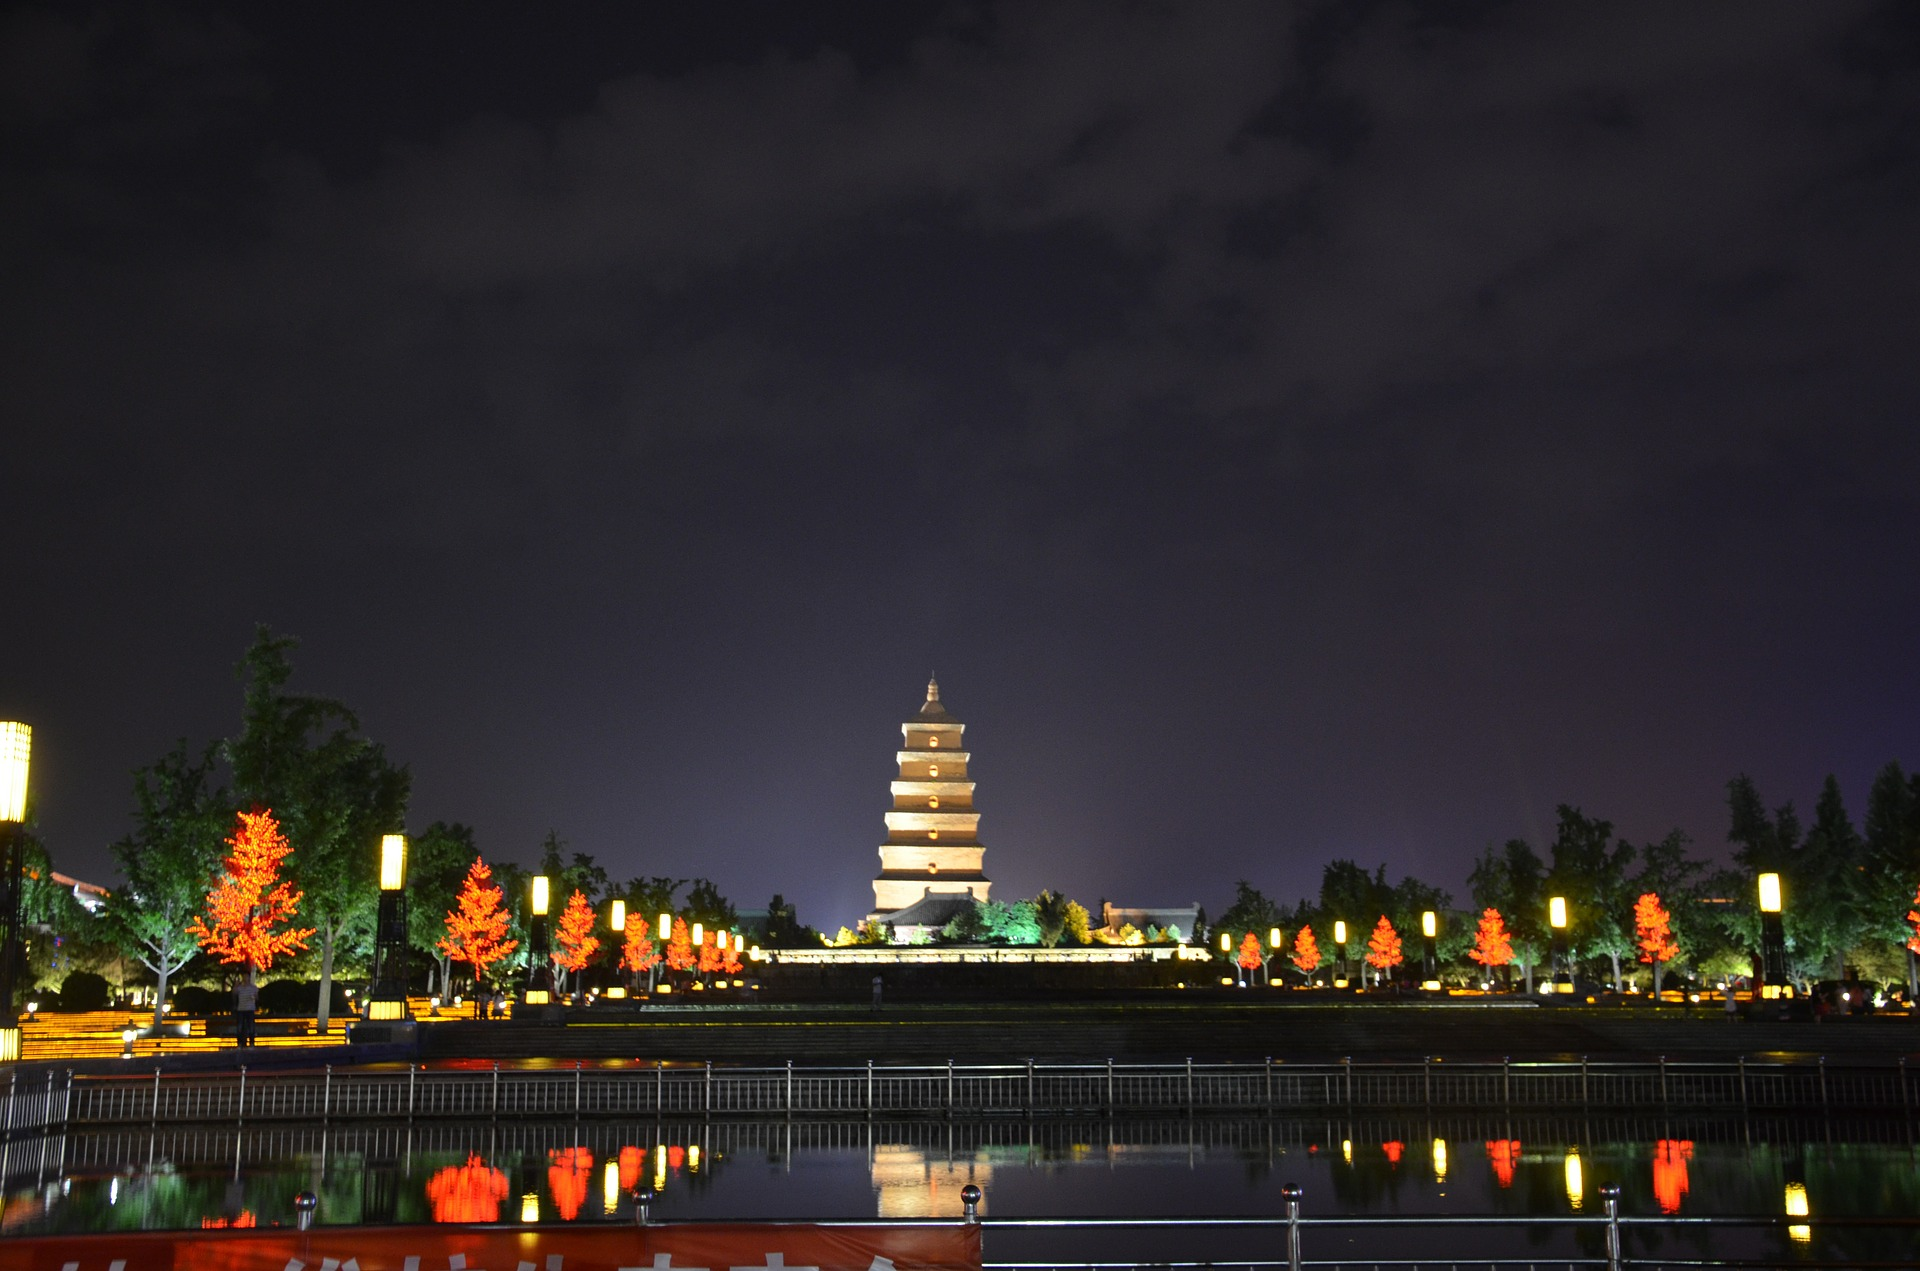 At night, the pagoda is enlightened